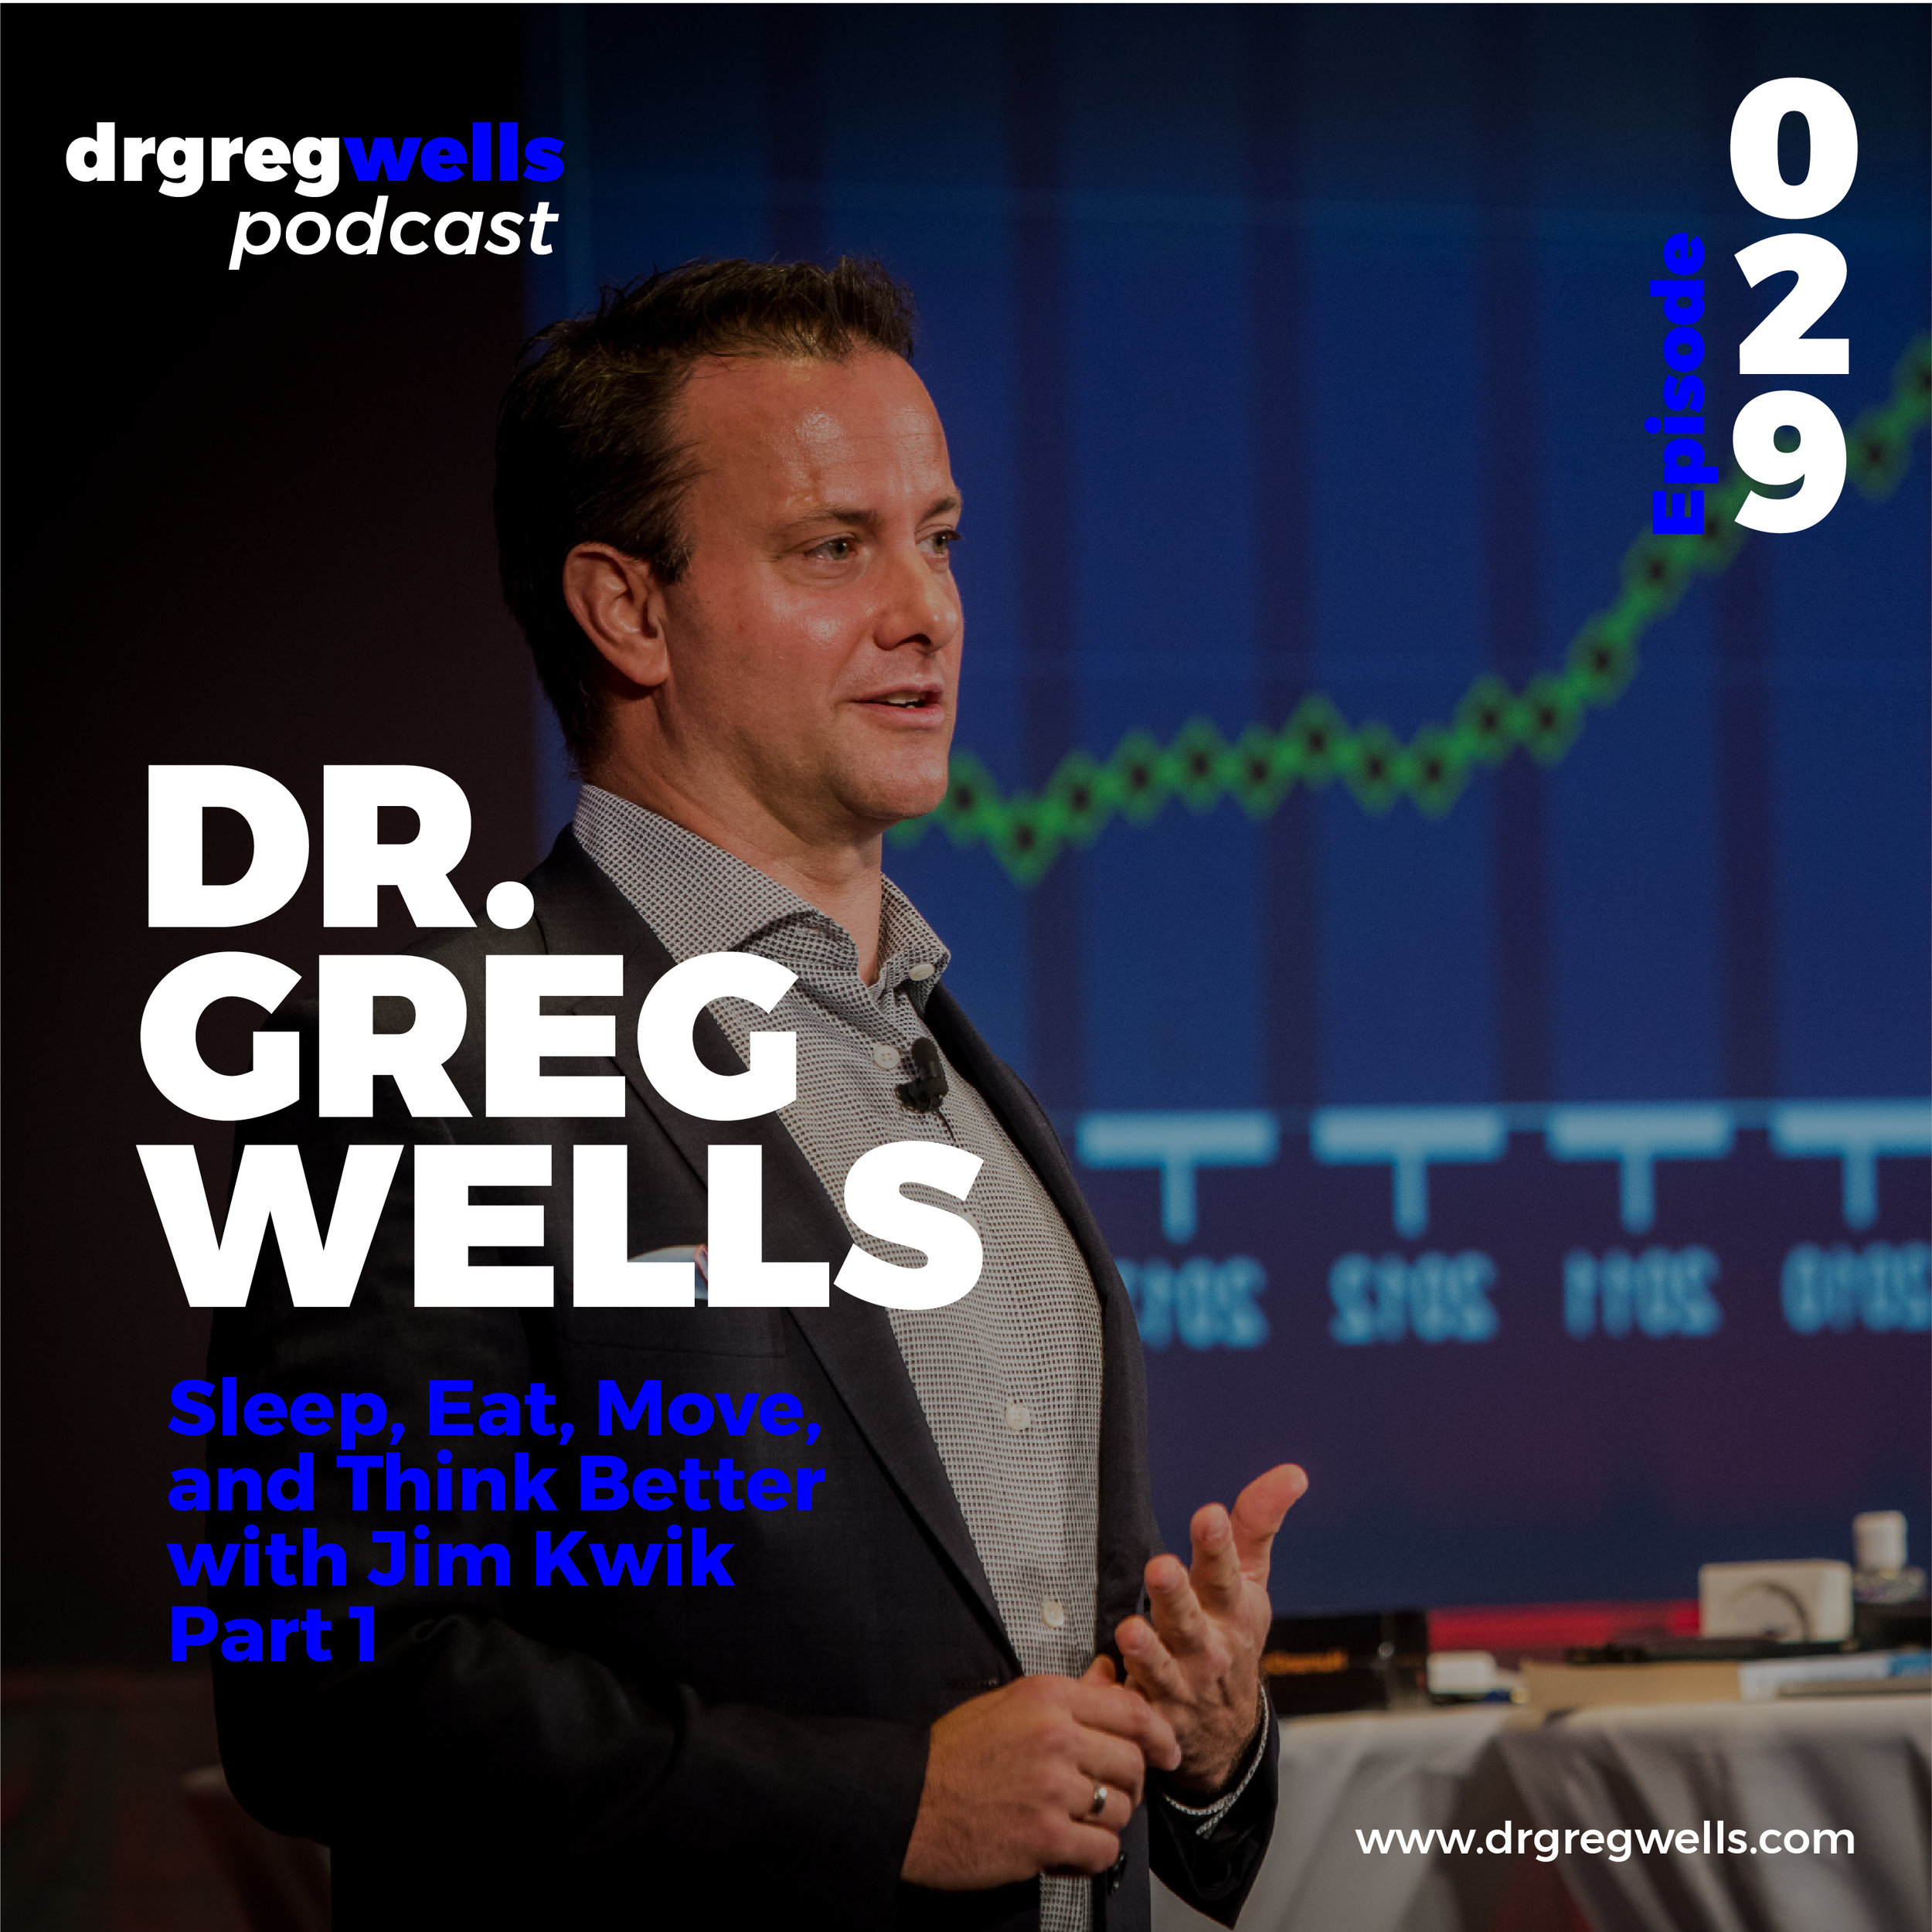 Dr Greg Wells Podcast Guest EP 1 - 32-29.jpg